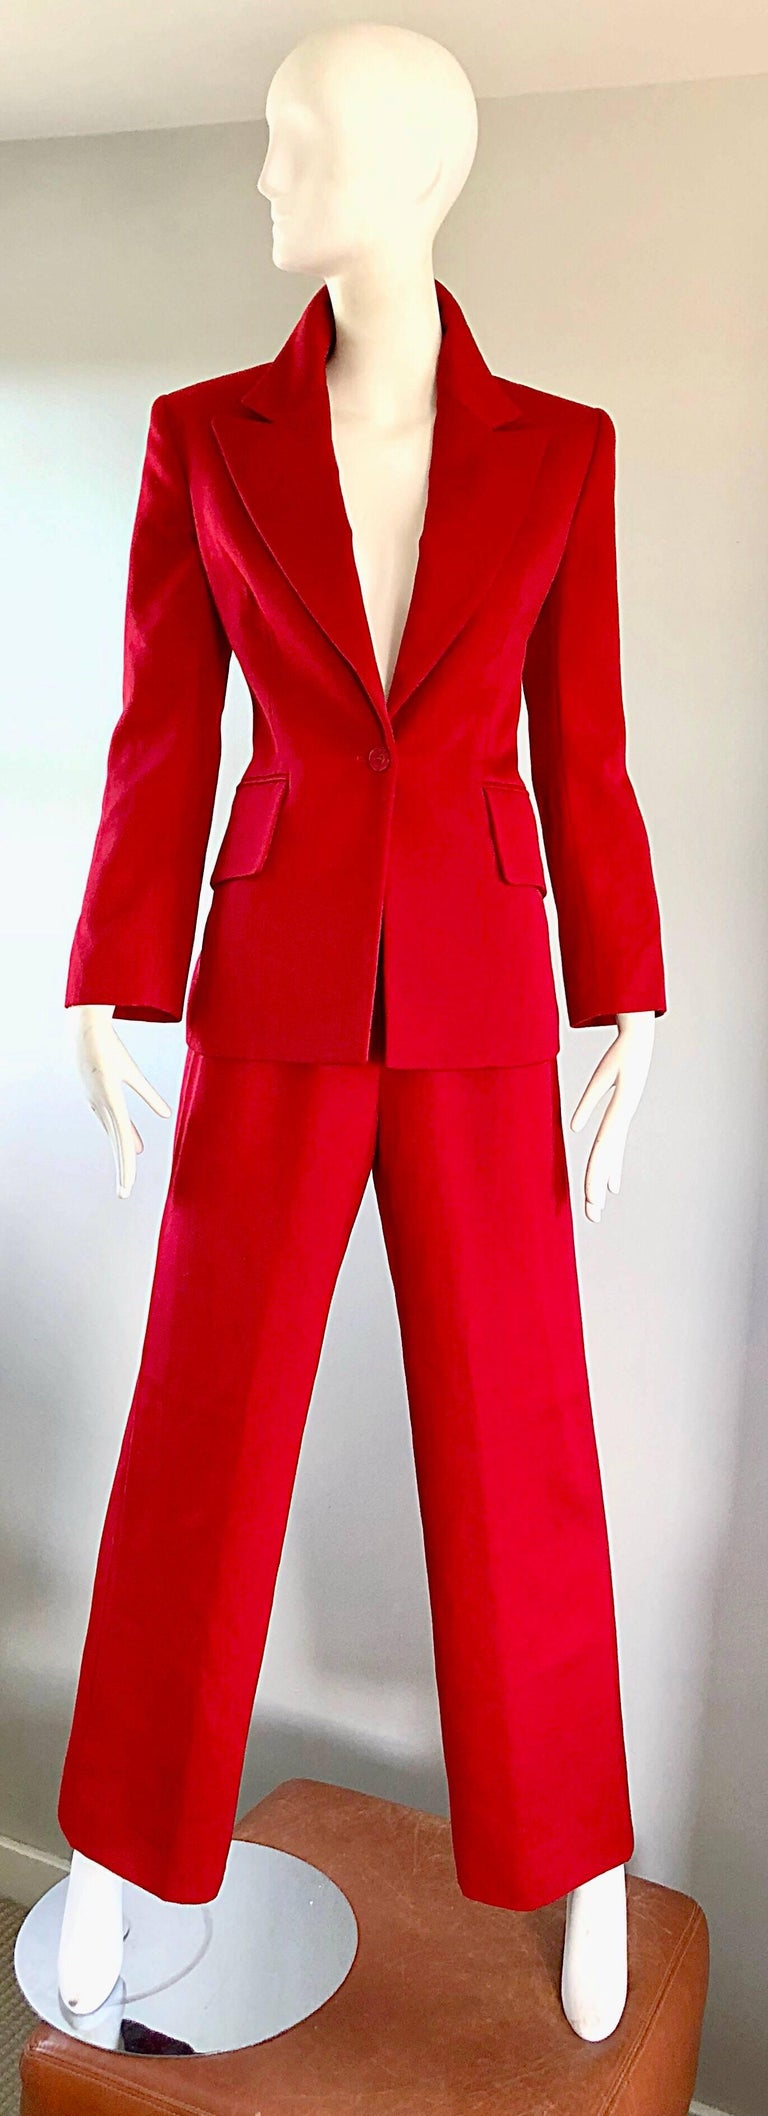 Isaac Mizrahi Vintage 1990s Lipstick Red Wide Leg Wool Le Smoking 90s Pants Suit 2